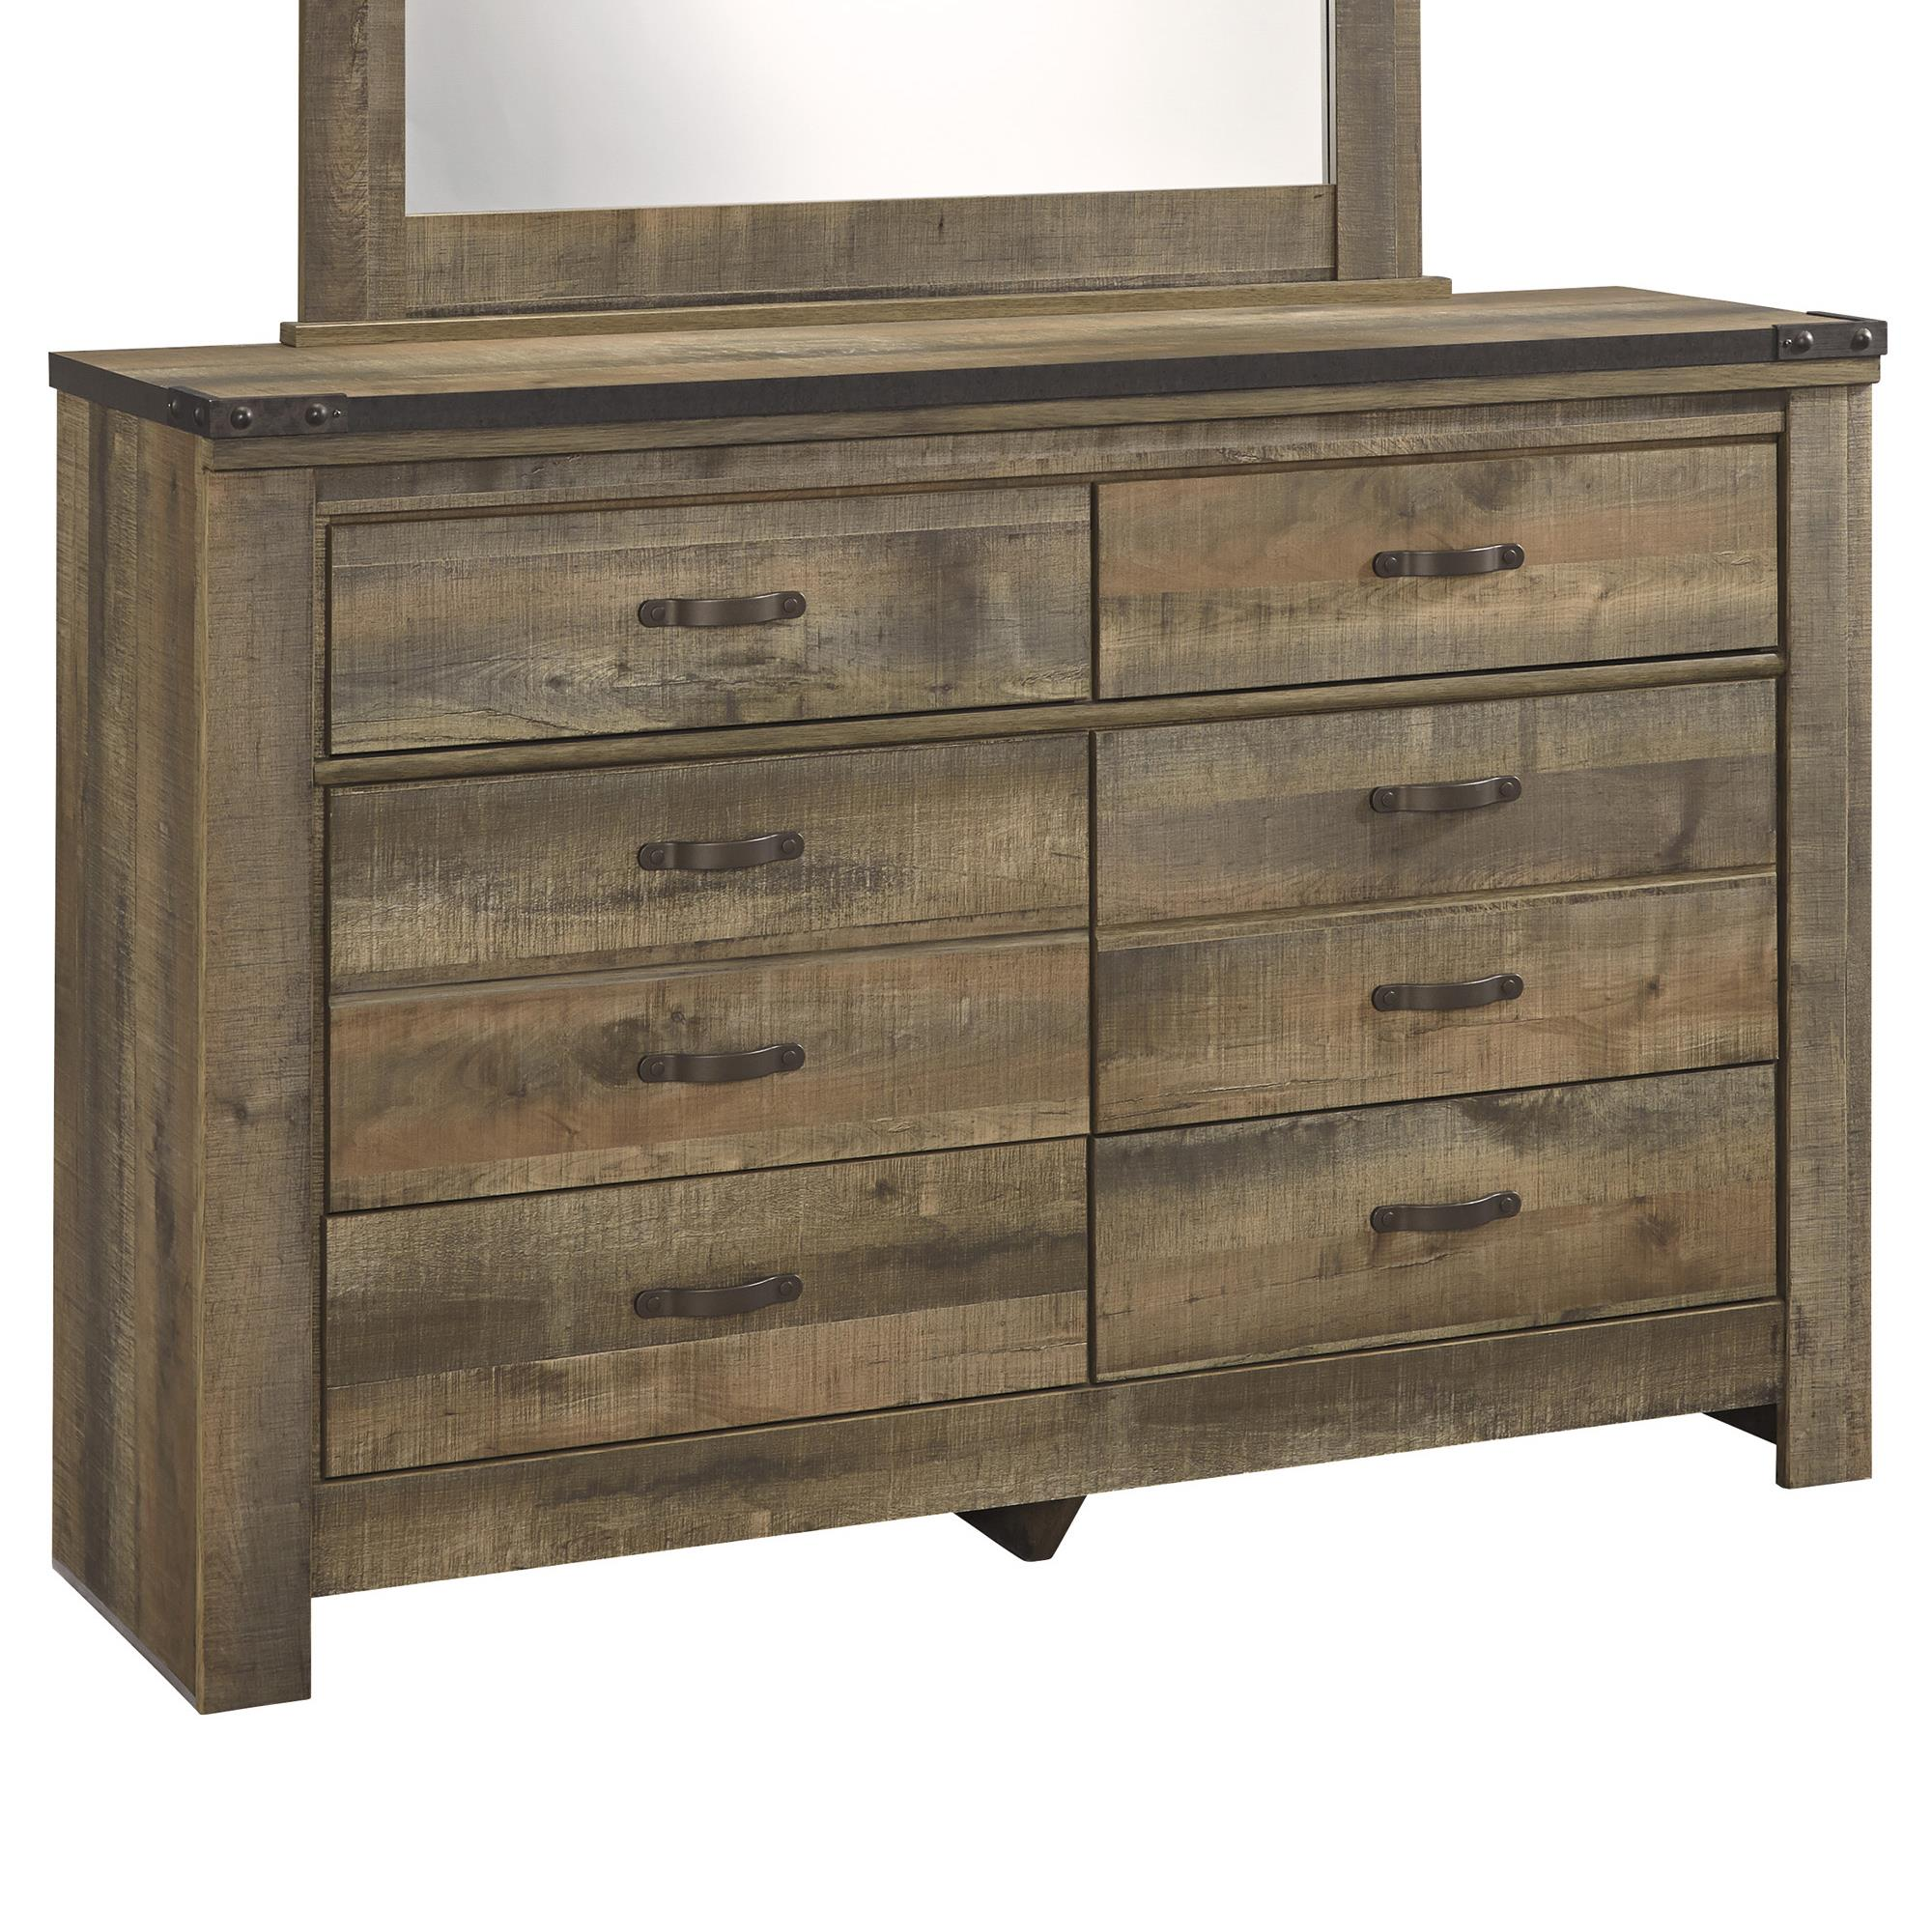 Signature Design by Ashley Trinell Youth Dresser - Item Number: B446-21